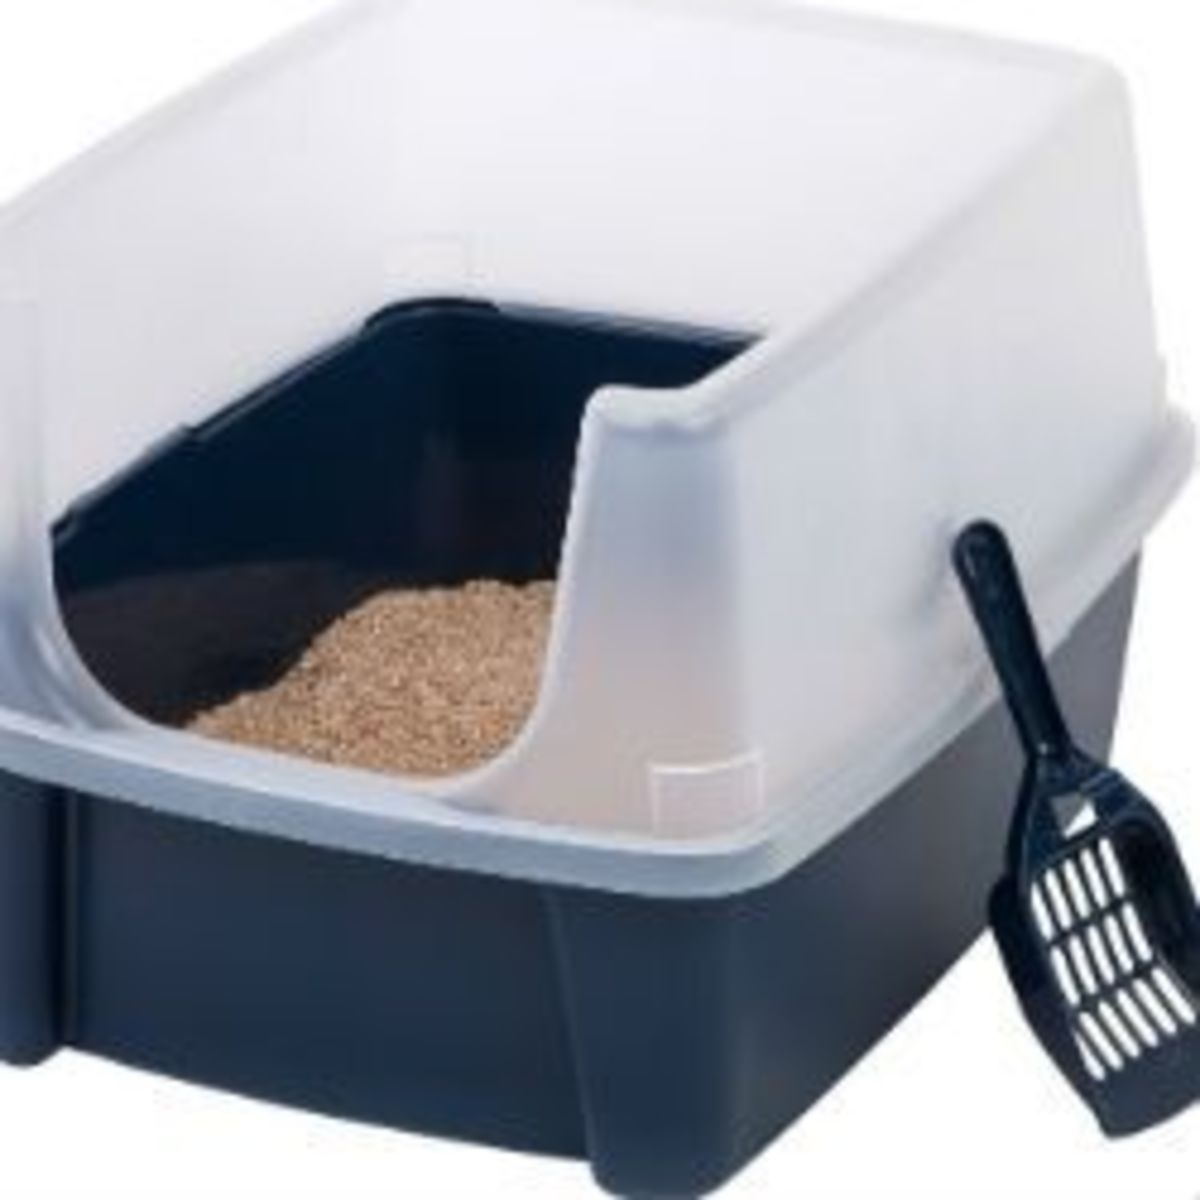 Best Litter Boxes For Odor Control 2014